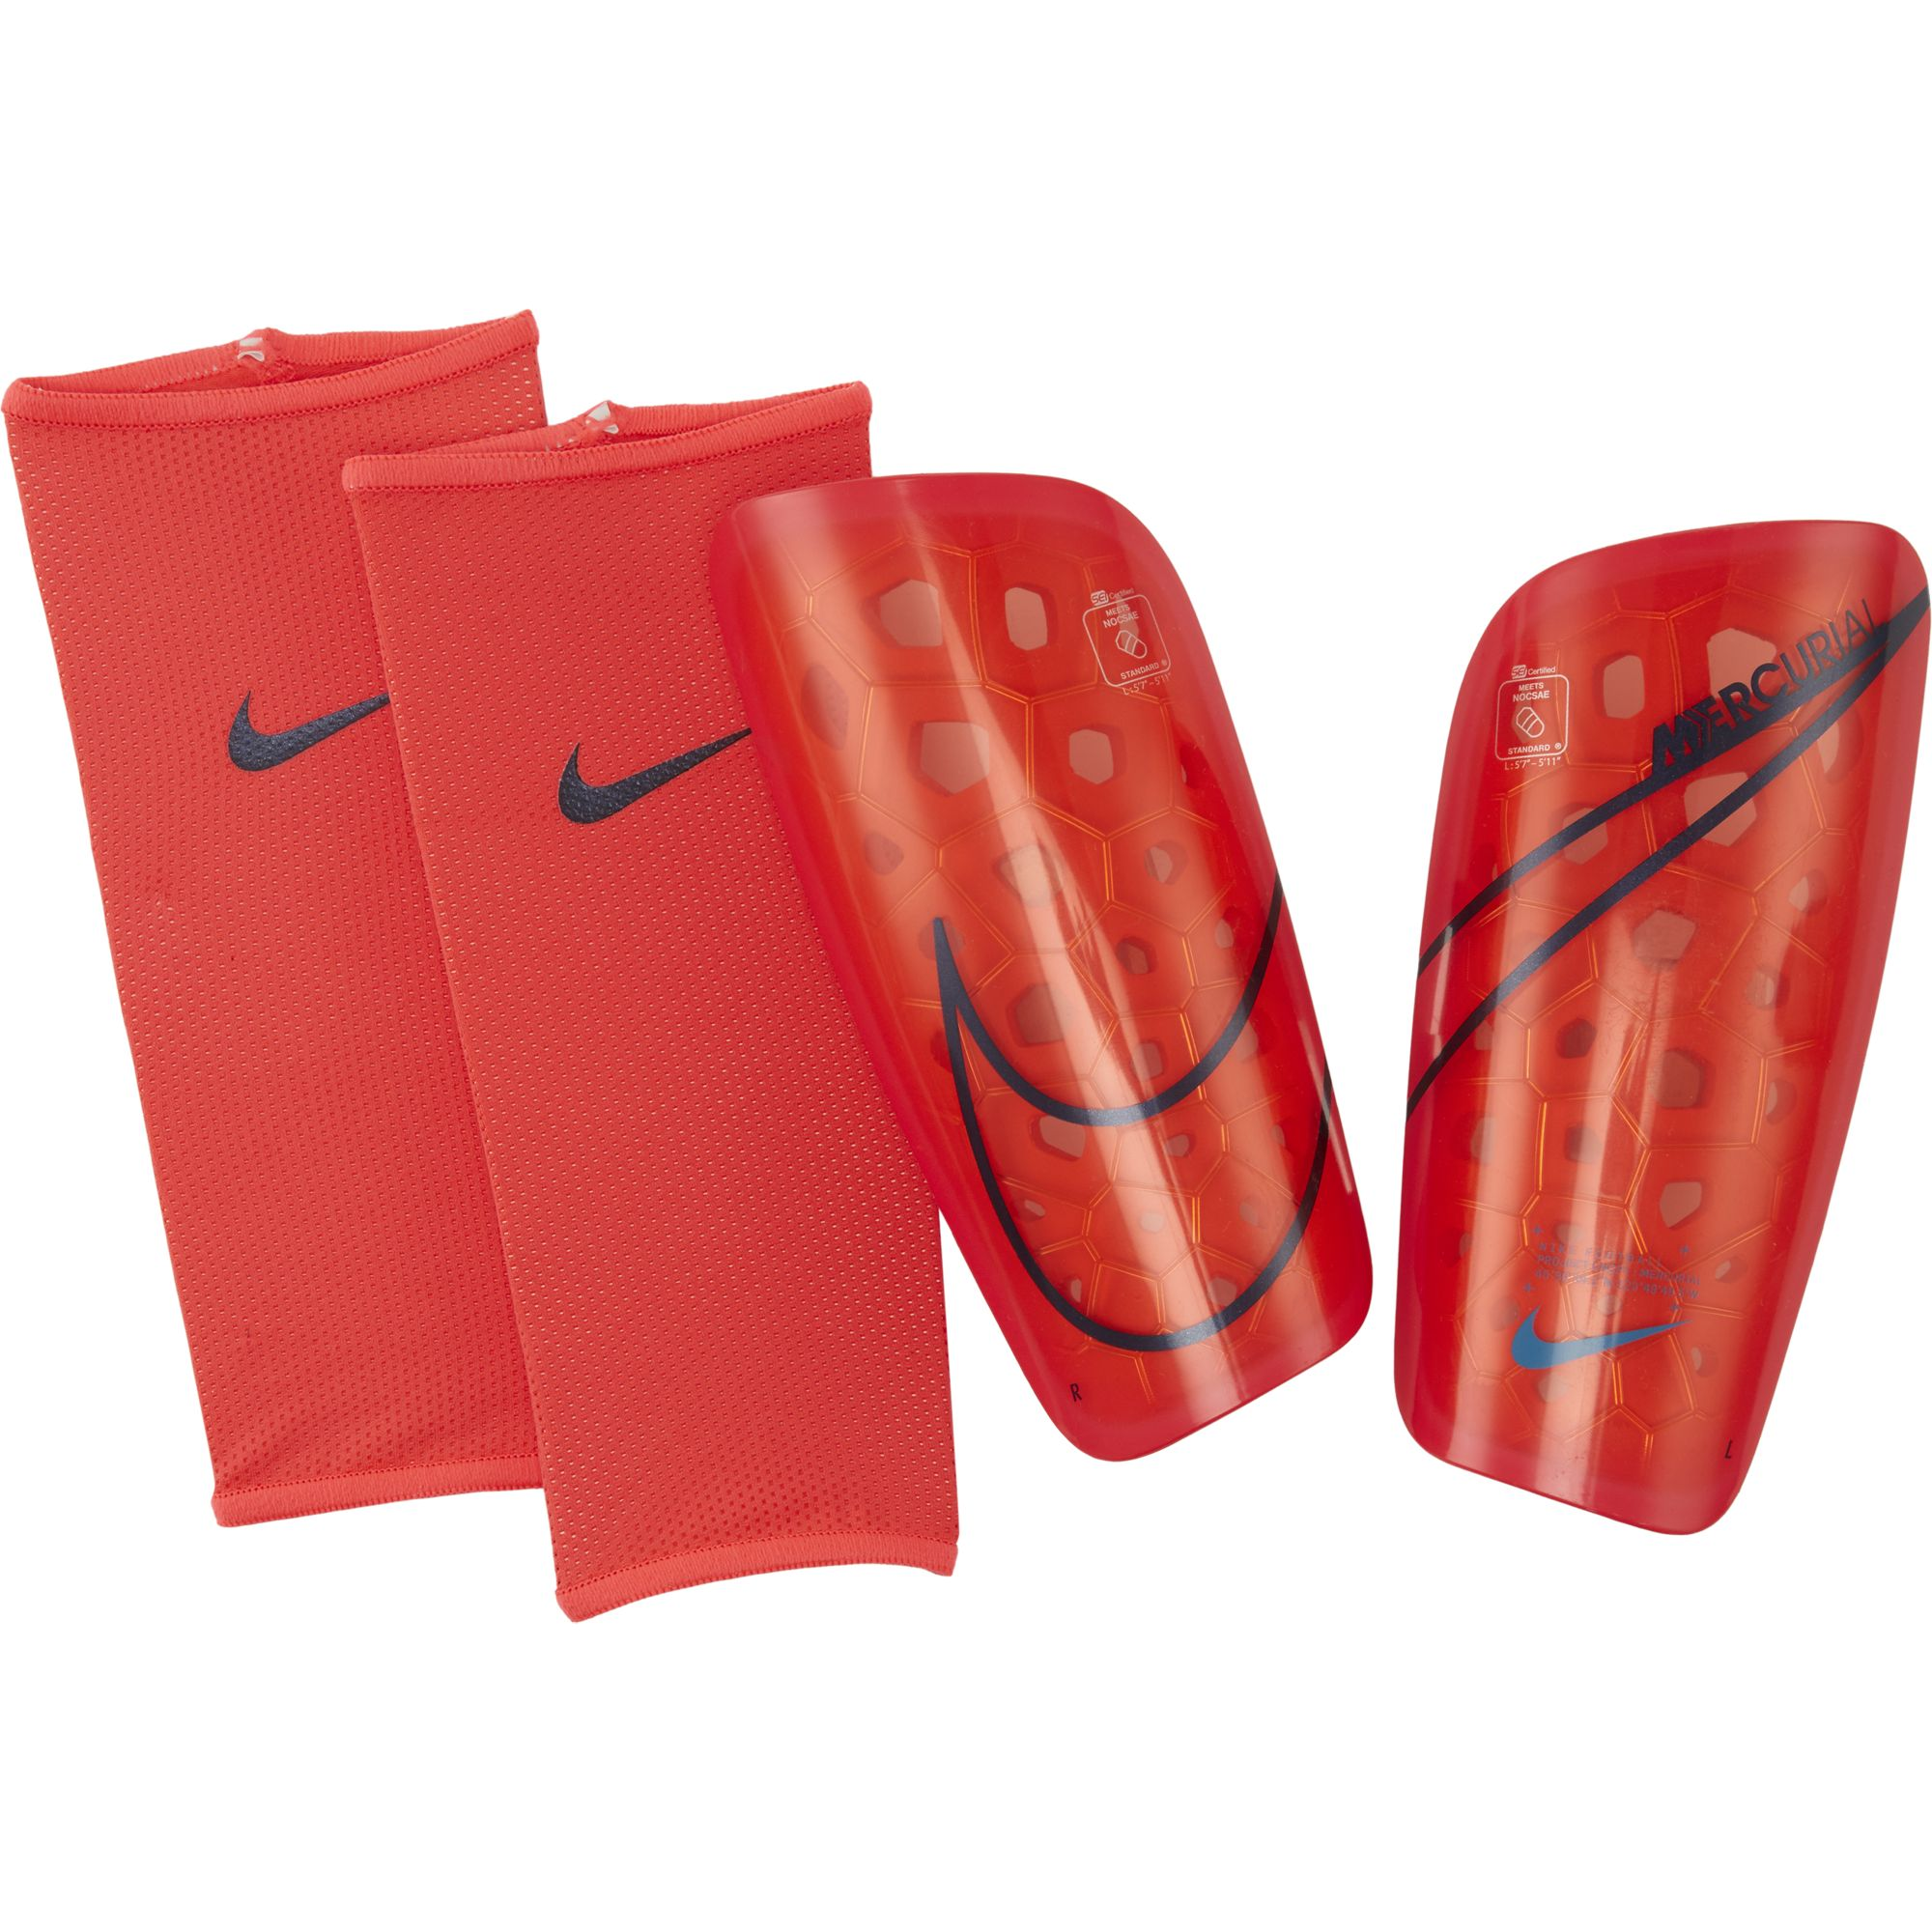 Mercurial Lite Shin Guards, Crimson, swatch